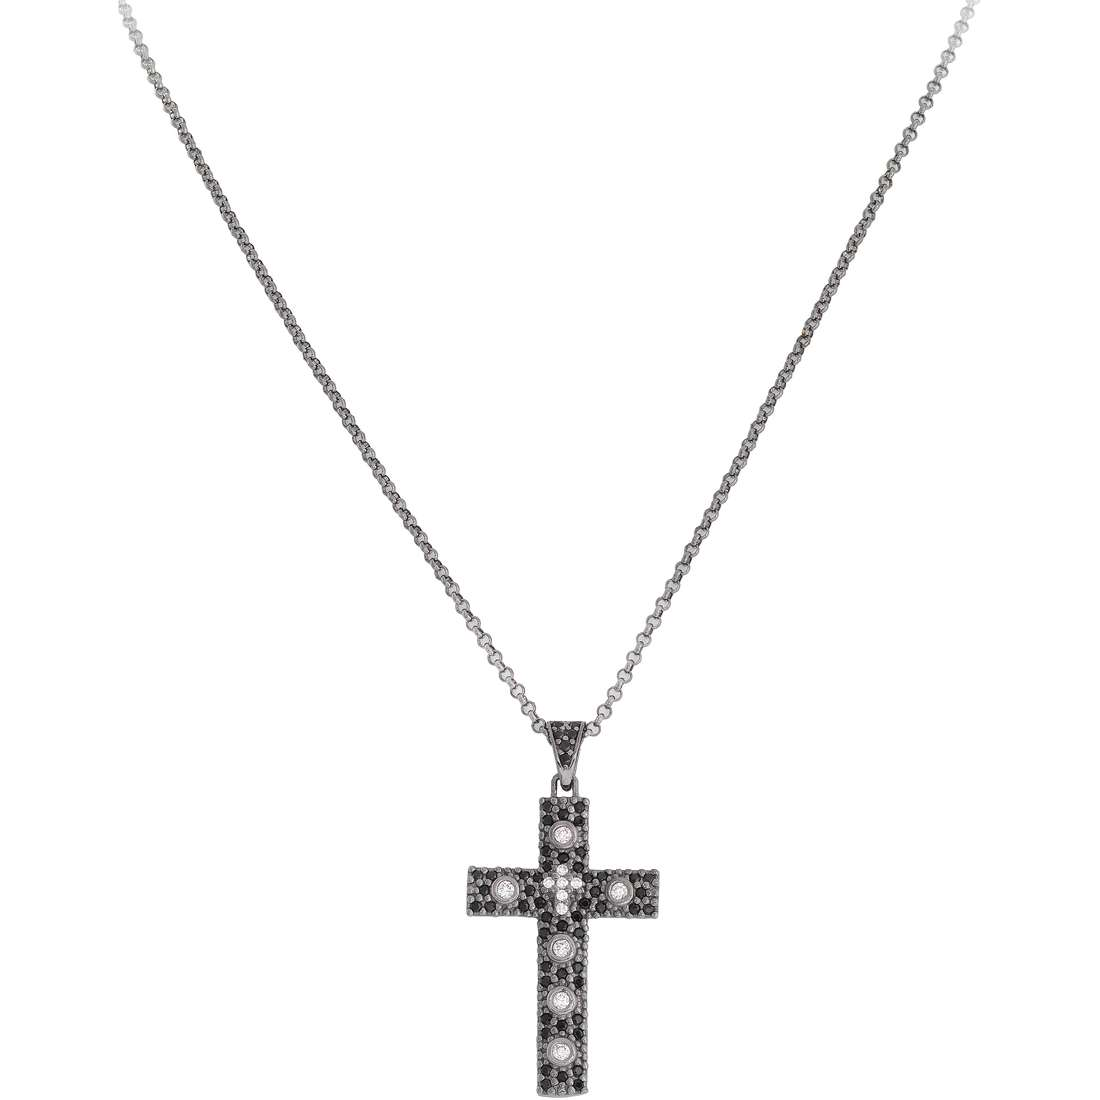 necklace unisex jewellery Amen CCZNB